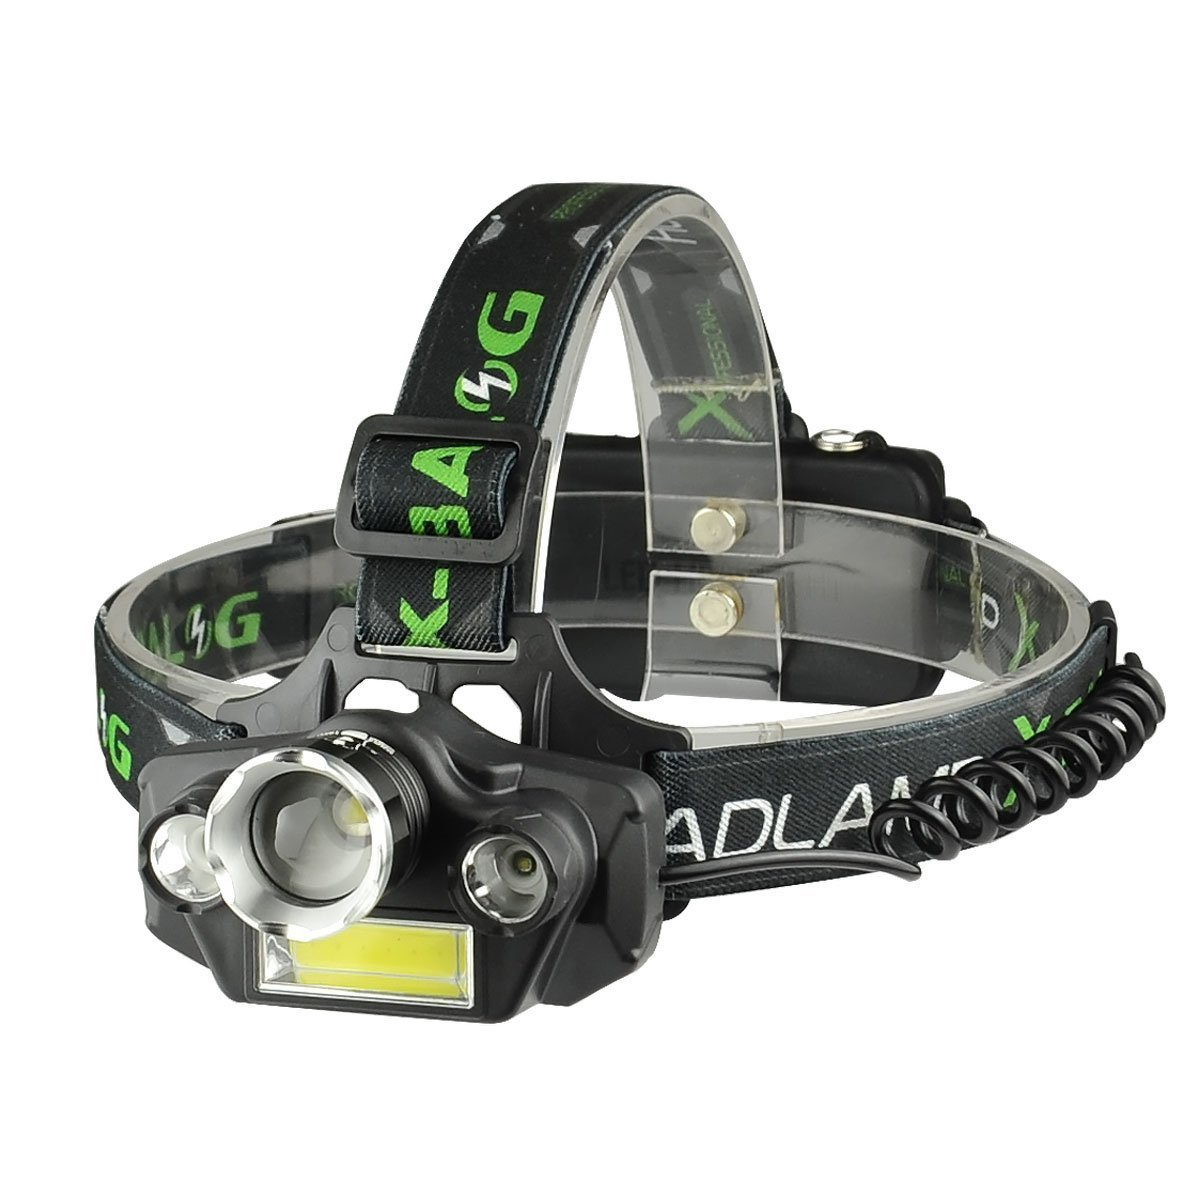 LED Headlamp Flashlight, USB Rechargeable LED Headlamp- Waterproof & Comfortable Headlight, Battery Powered Helmet Light, 8000 Lumen 4 Light 5 Modes Super Bright by KAILEDI. (Image #1)